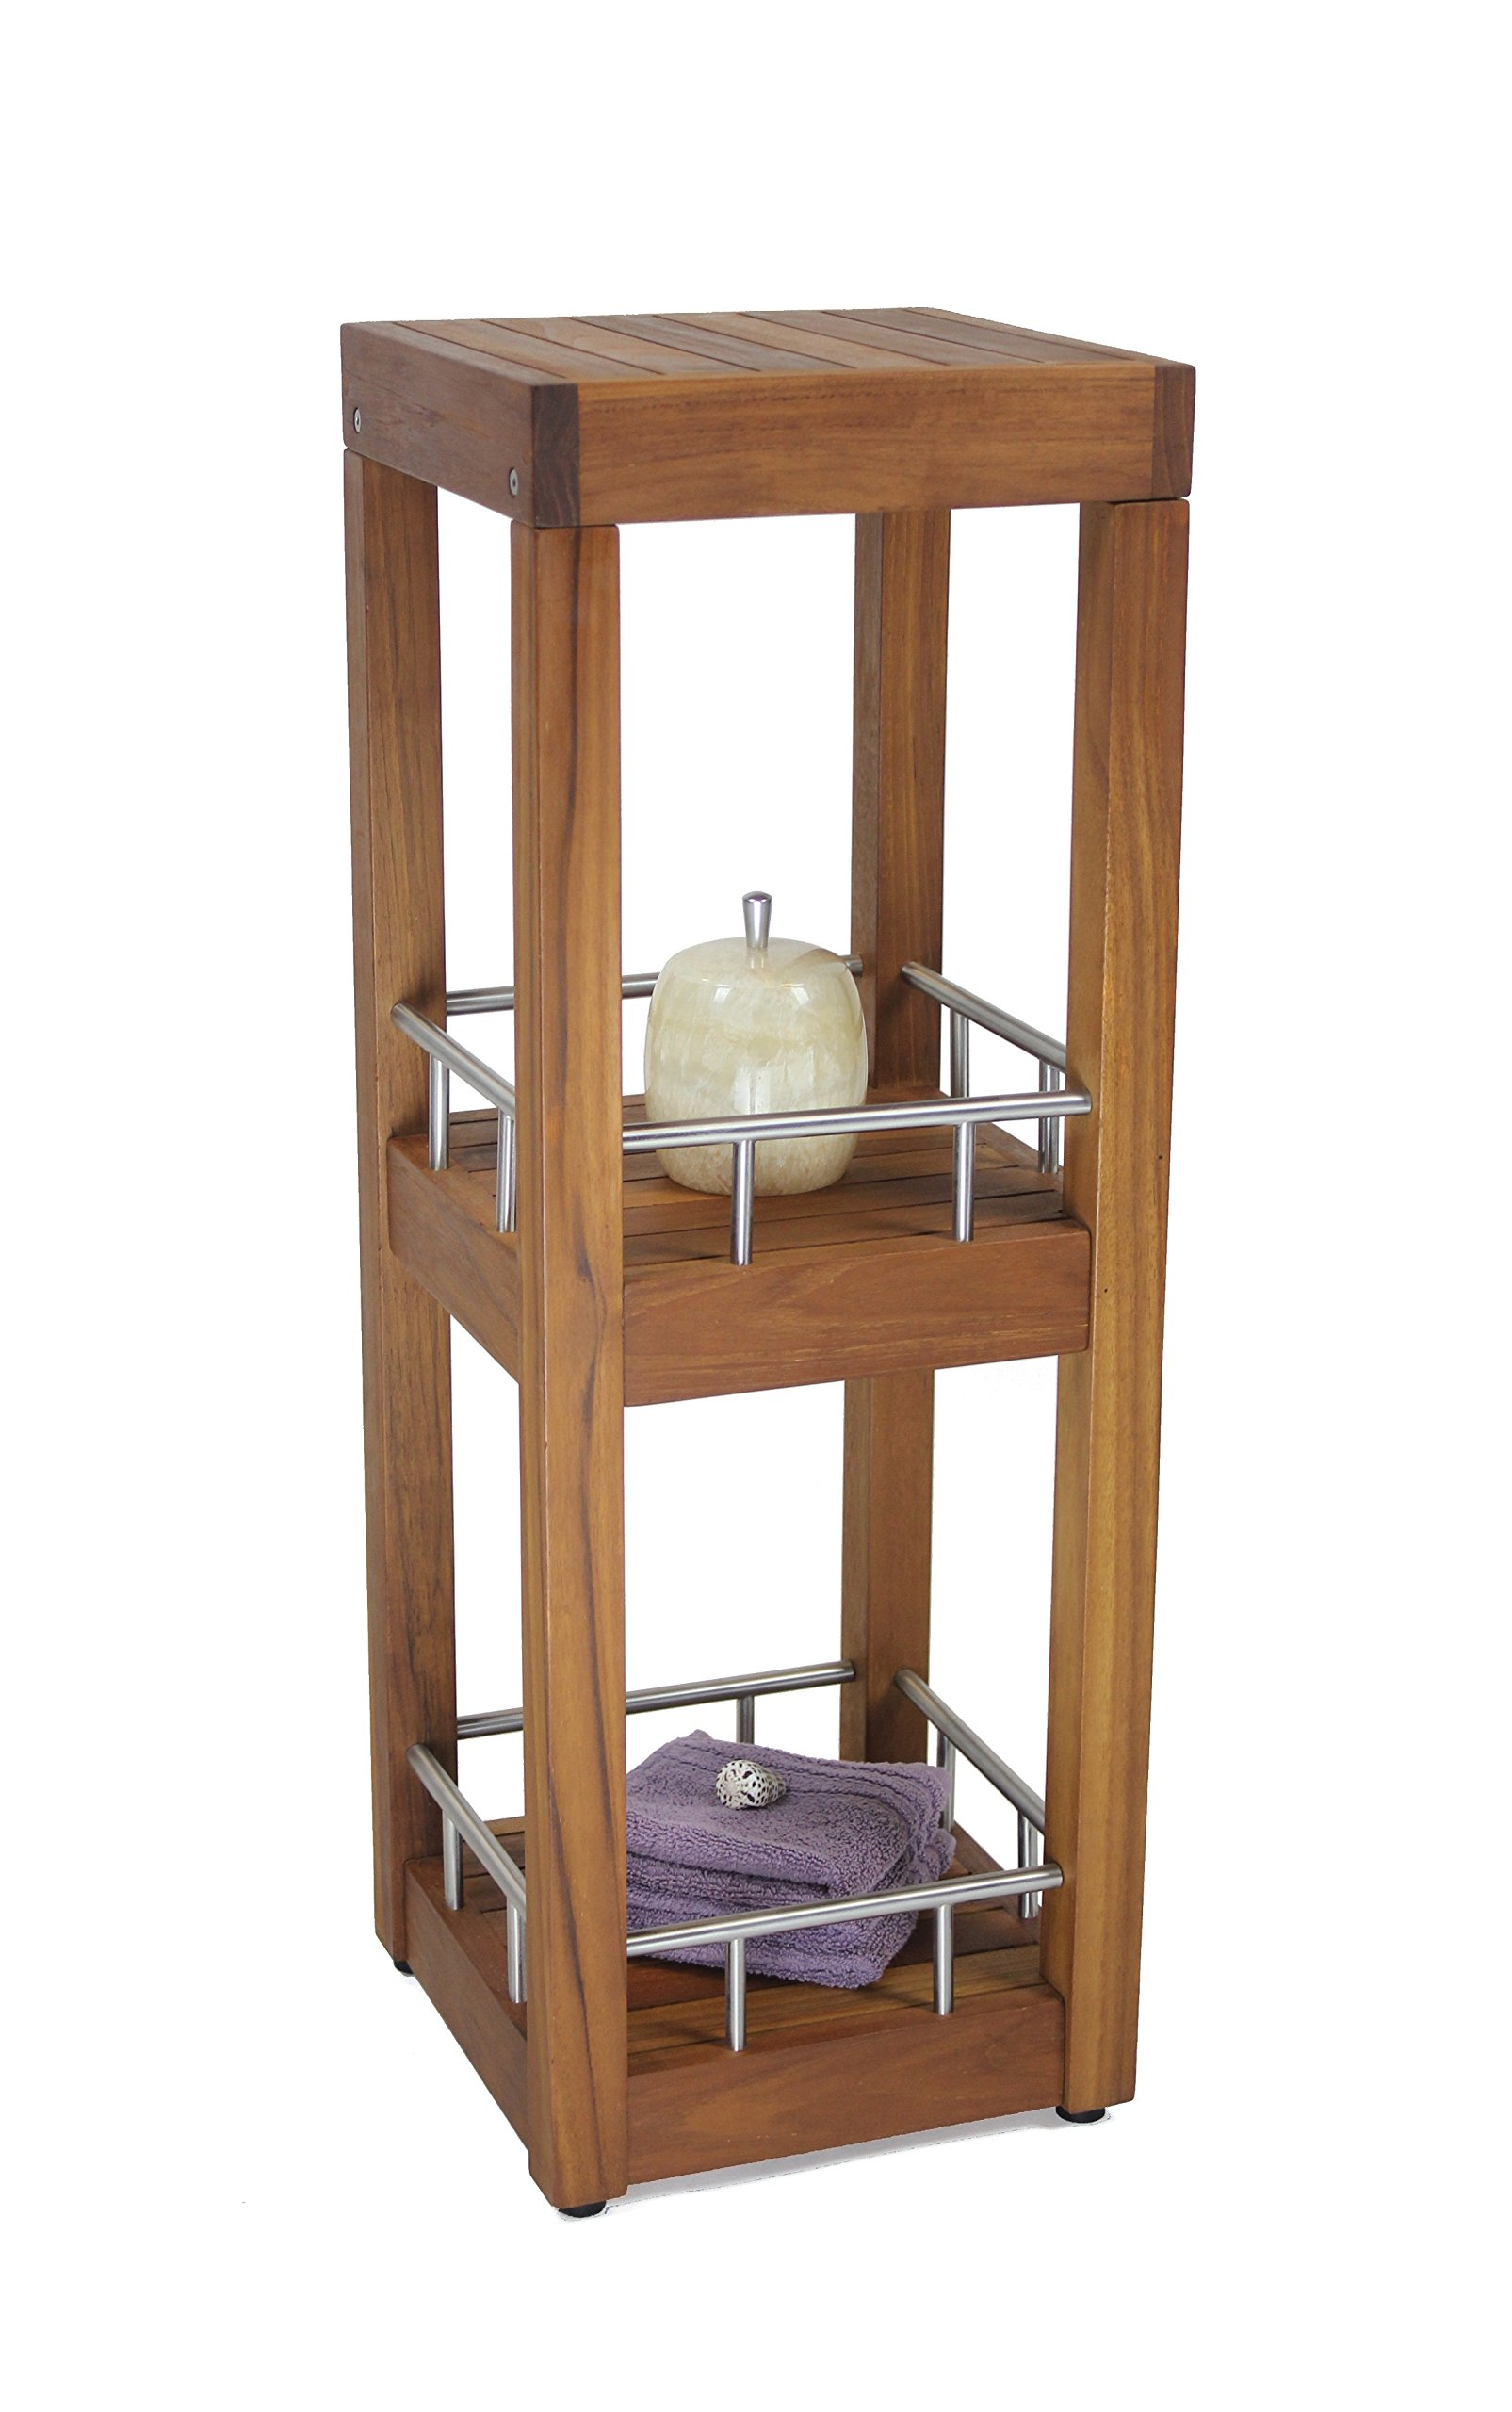 The Original Sula Square Three Tier Teak & Stainless Bath Stand by AquaTeak